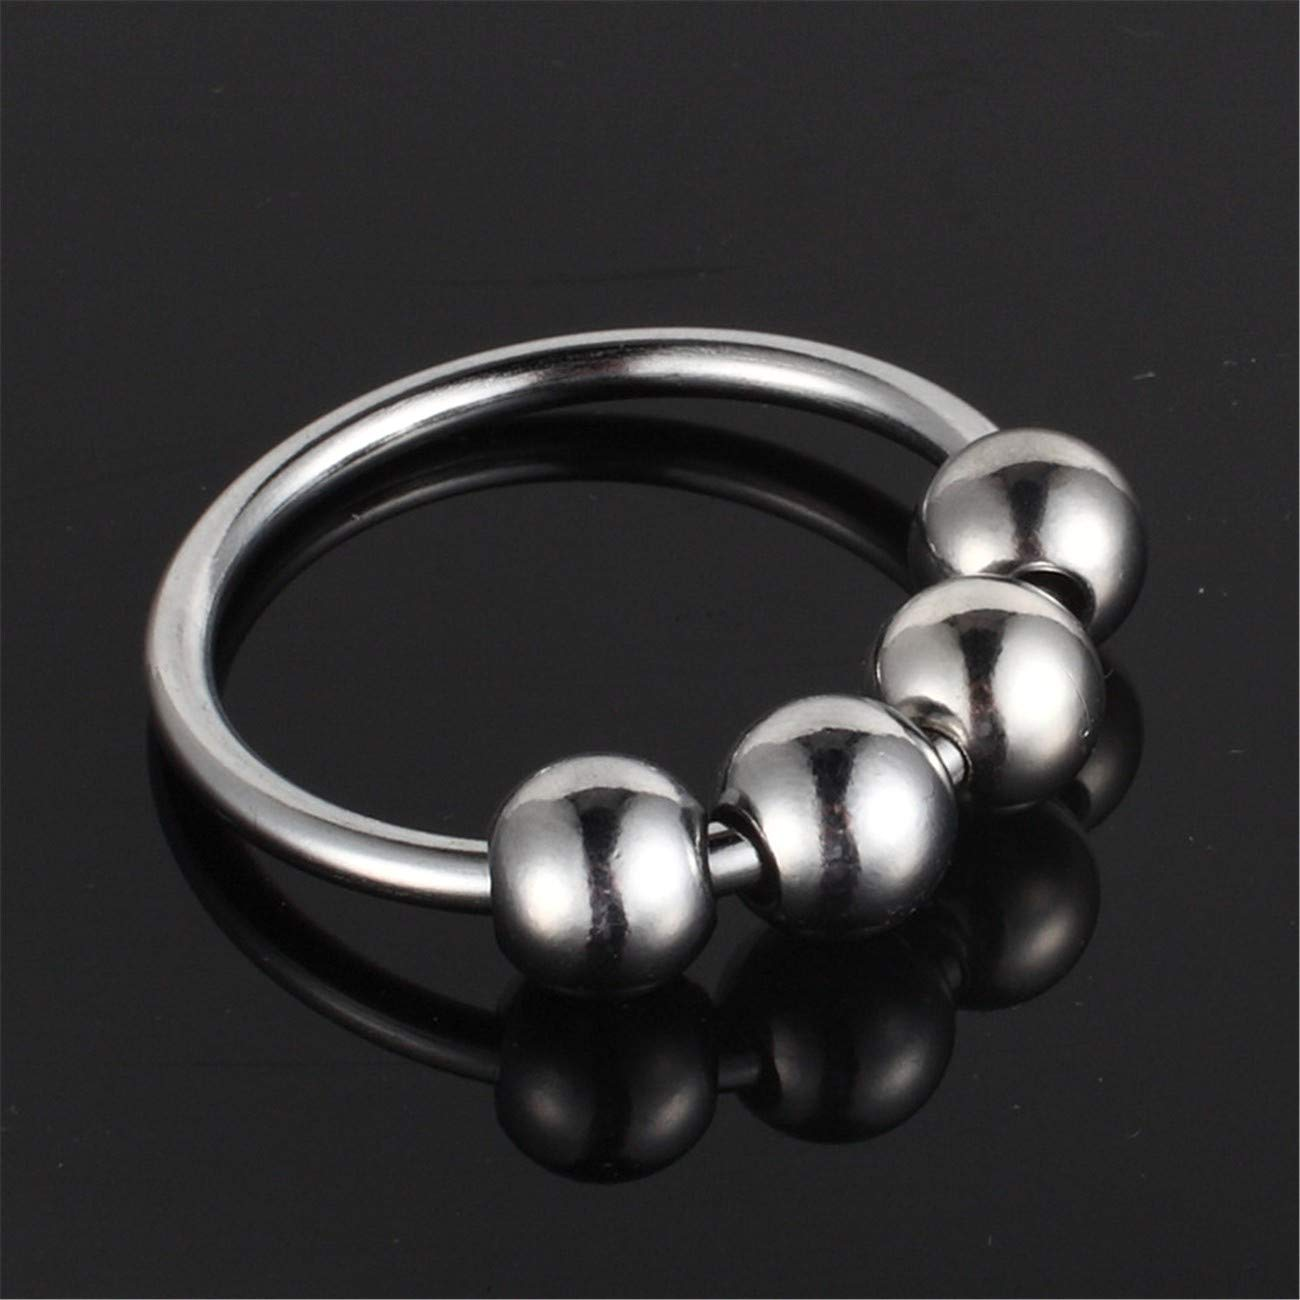 Beads 40Mm Stainless Steel Male Penis Ring Delay Ejaculation Newest Arrival C-ock R-ing with 4 Vibrating Bullet Glans Silicone Vibrator Beads for Male Adult Sex Toy G7-32 Silver L by Carlos Foushee (Image #4)